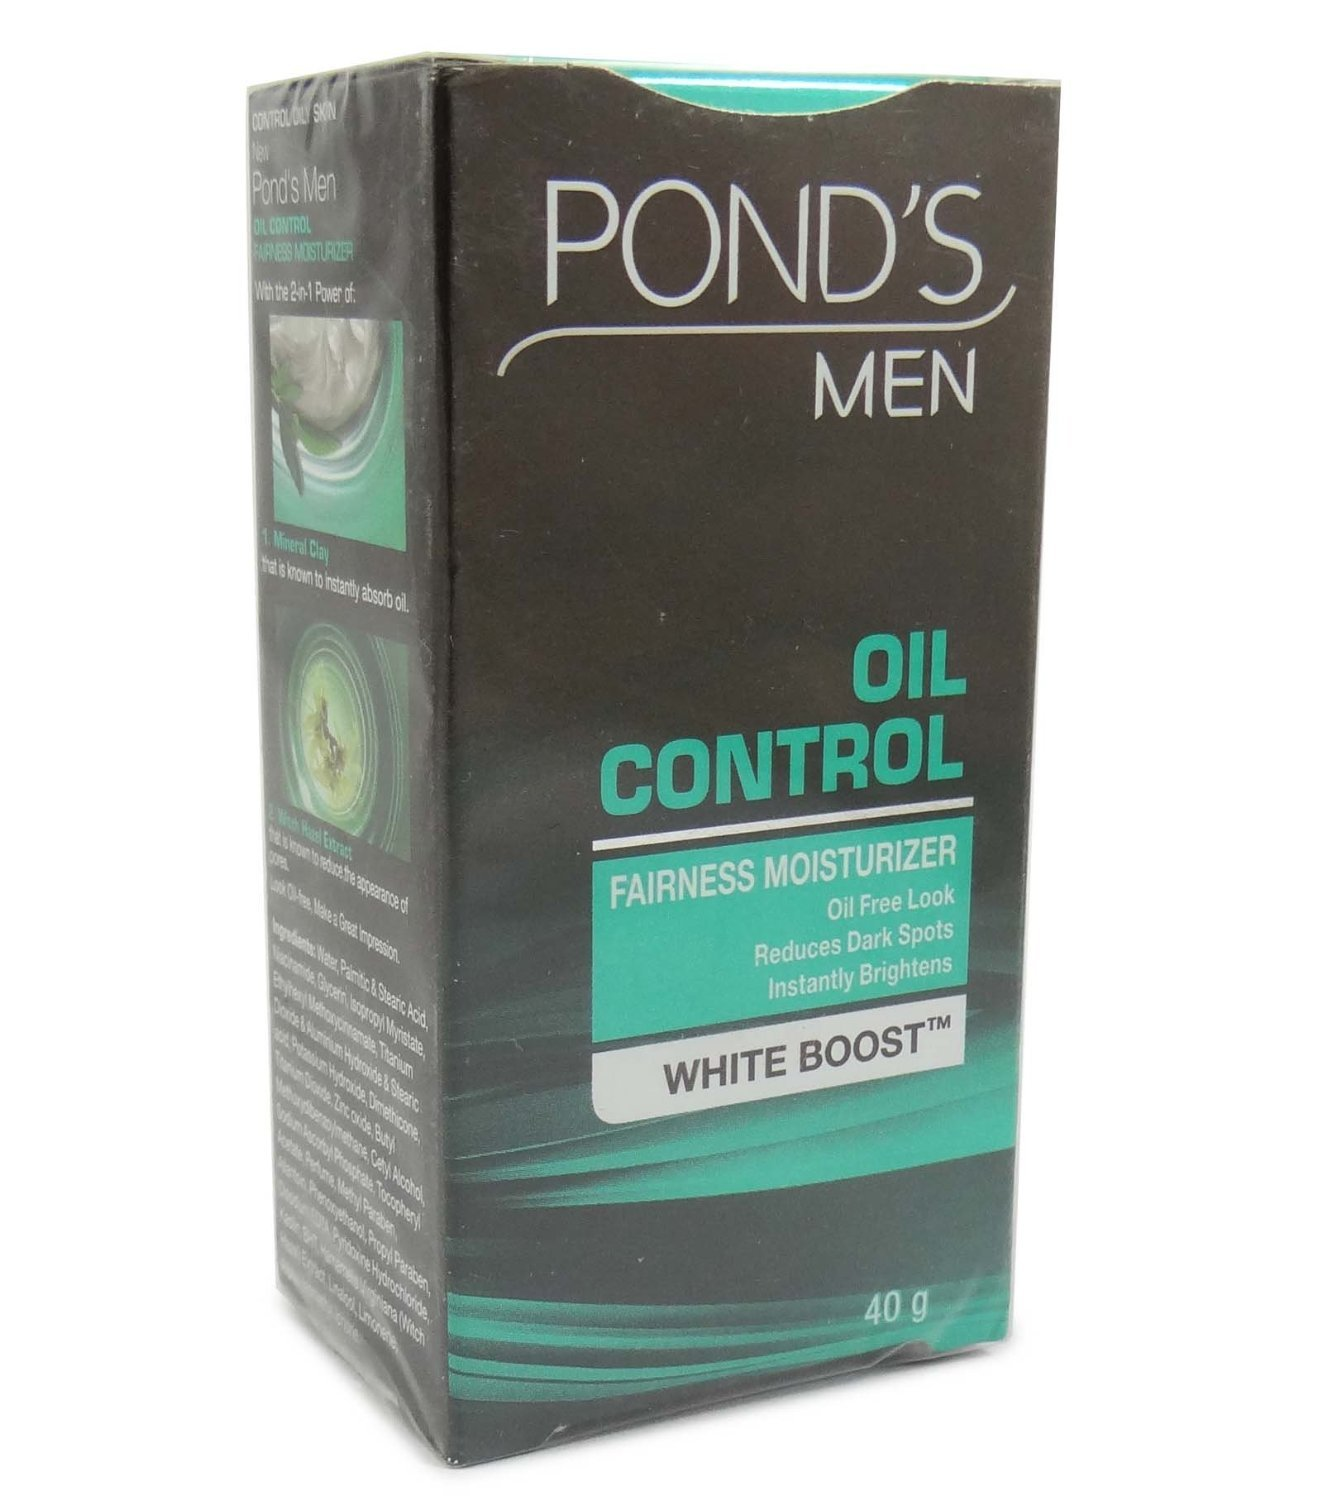 Ponds Men Oil Control Fairness Moisturizer 40 gms